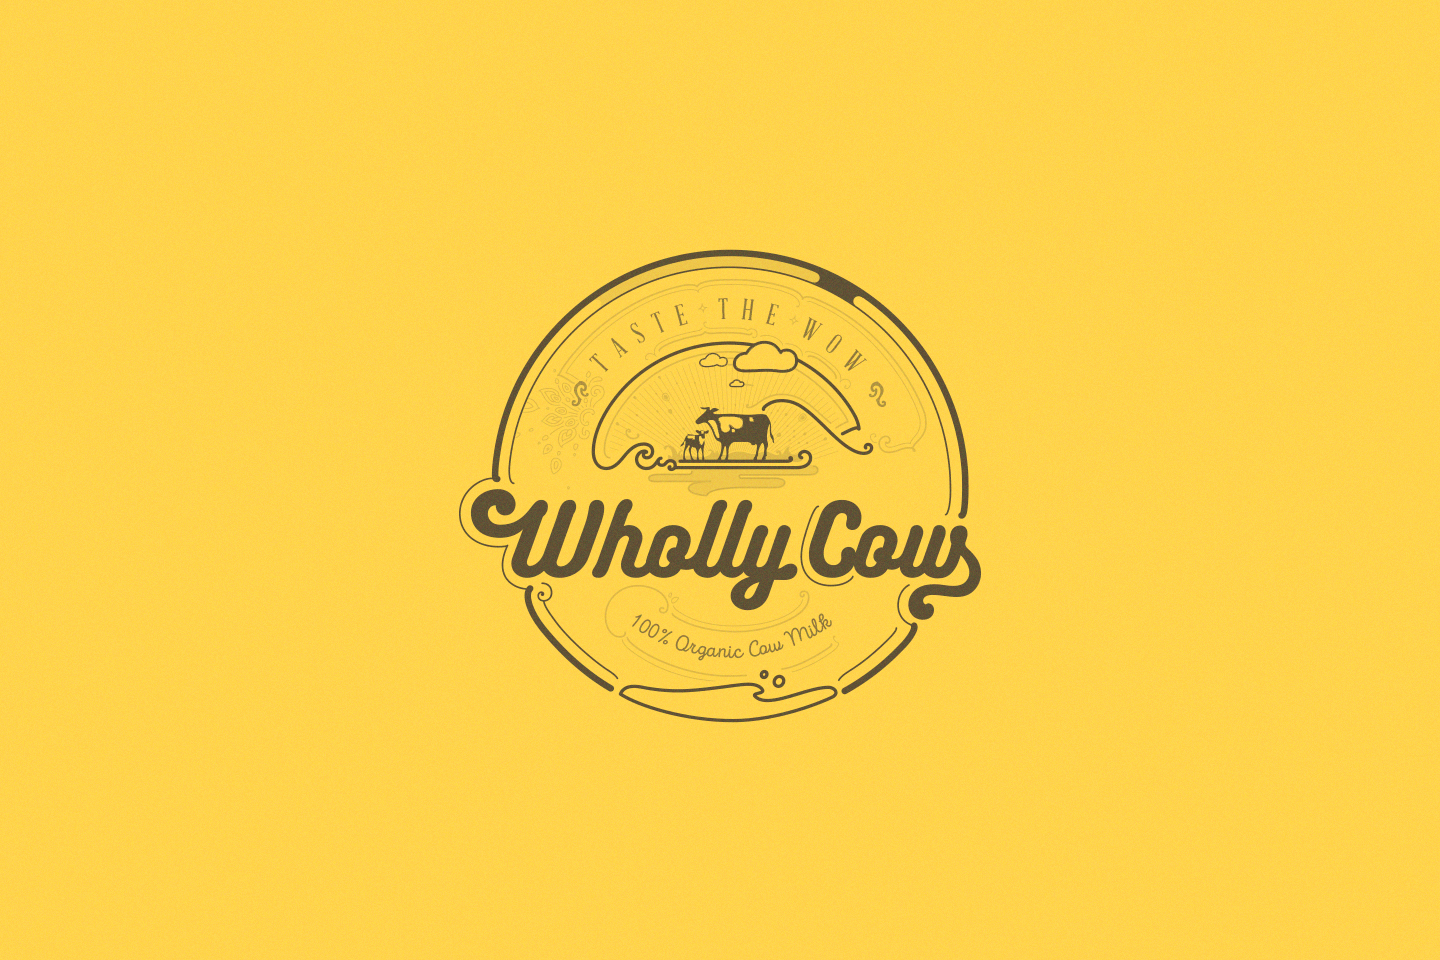 whollycow logo yellow